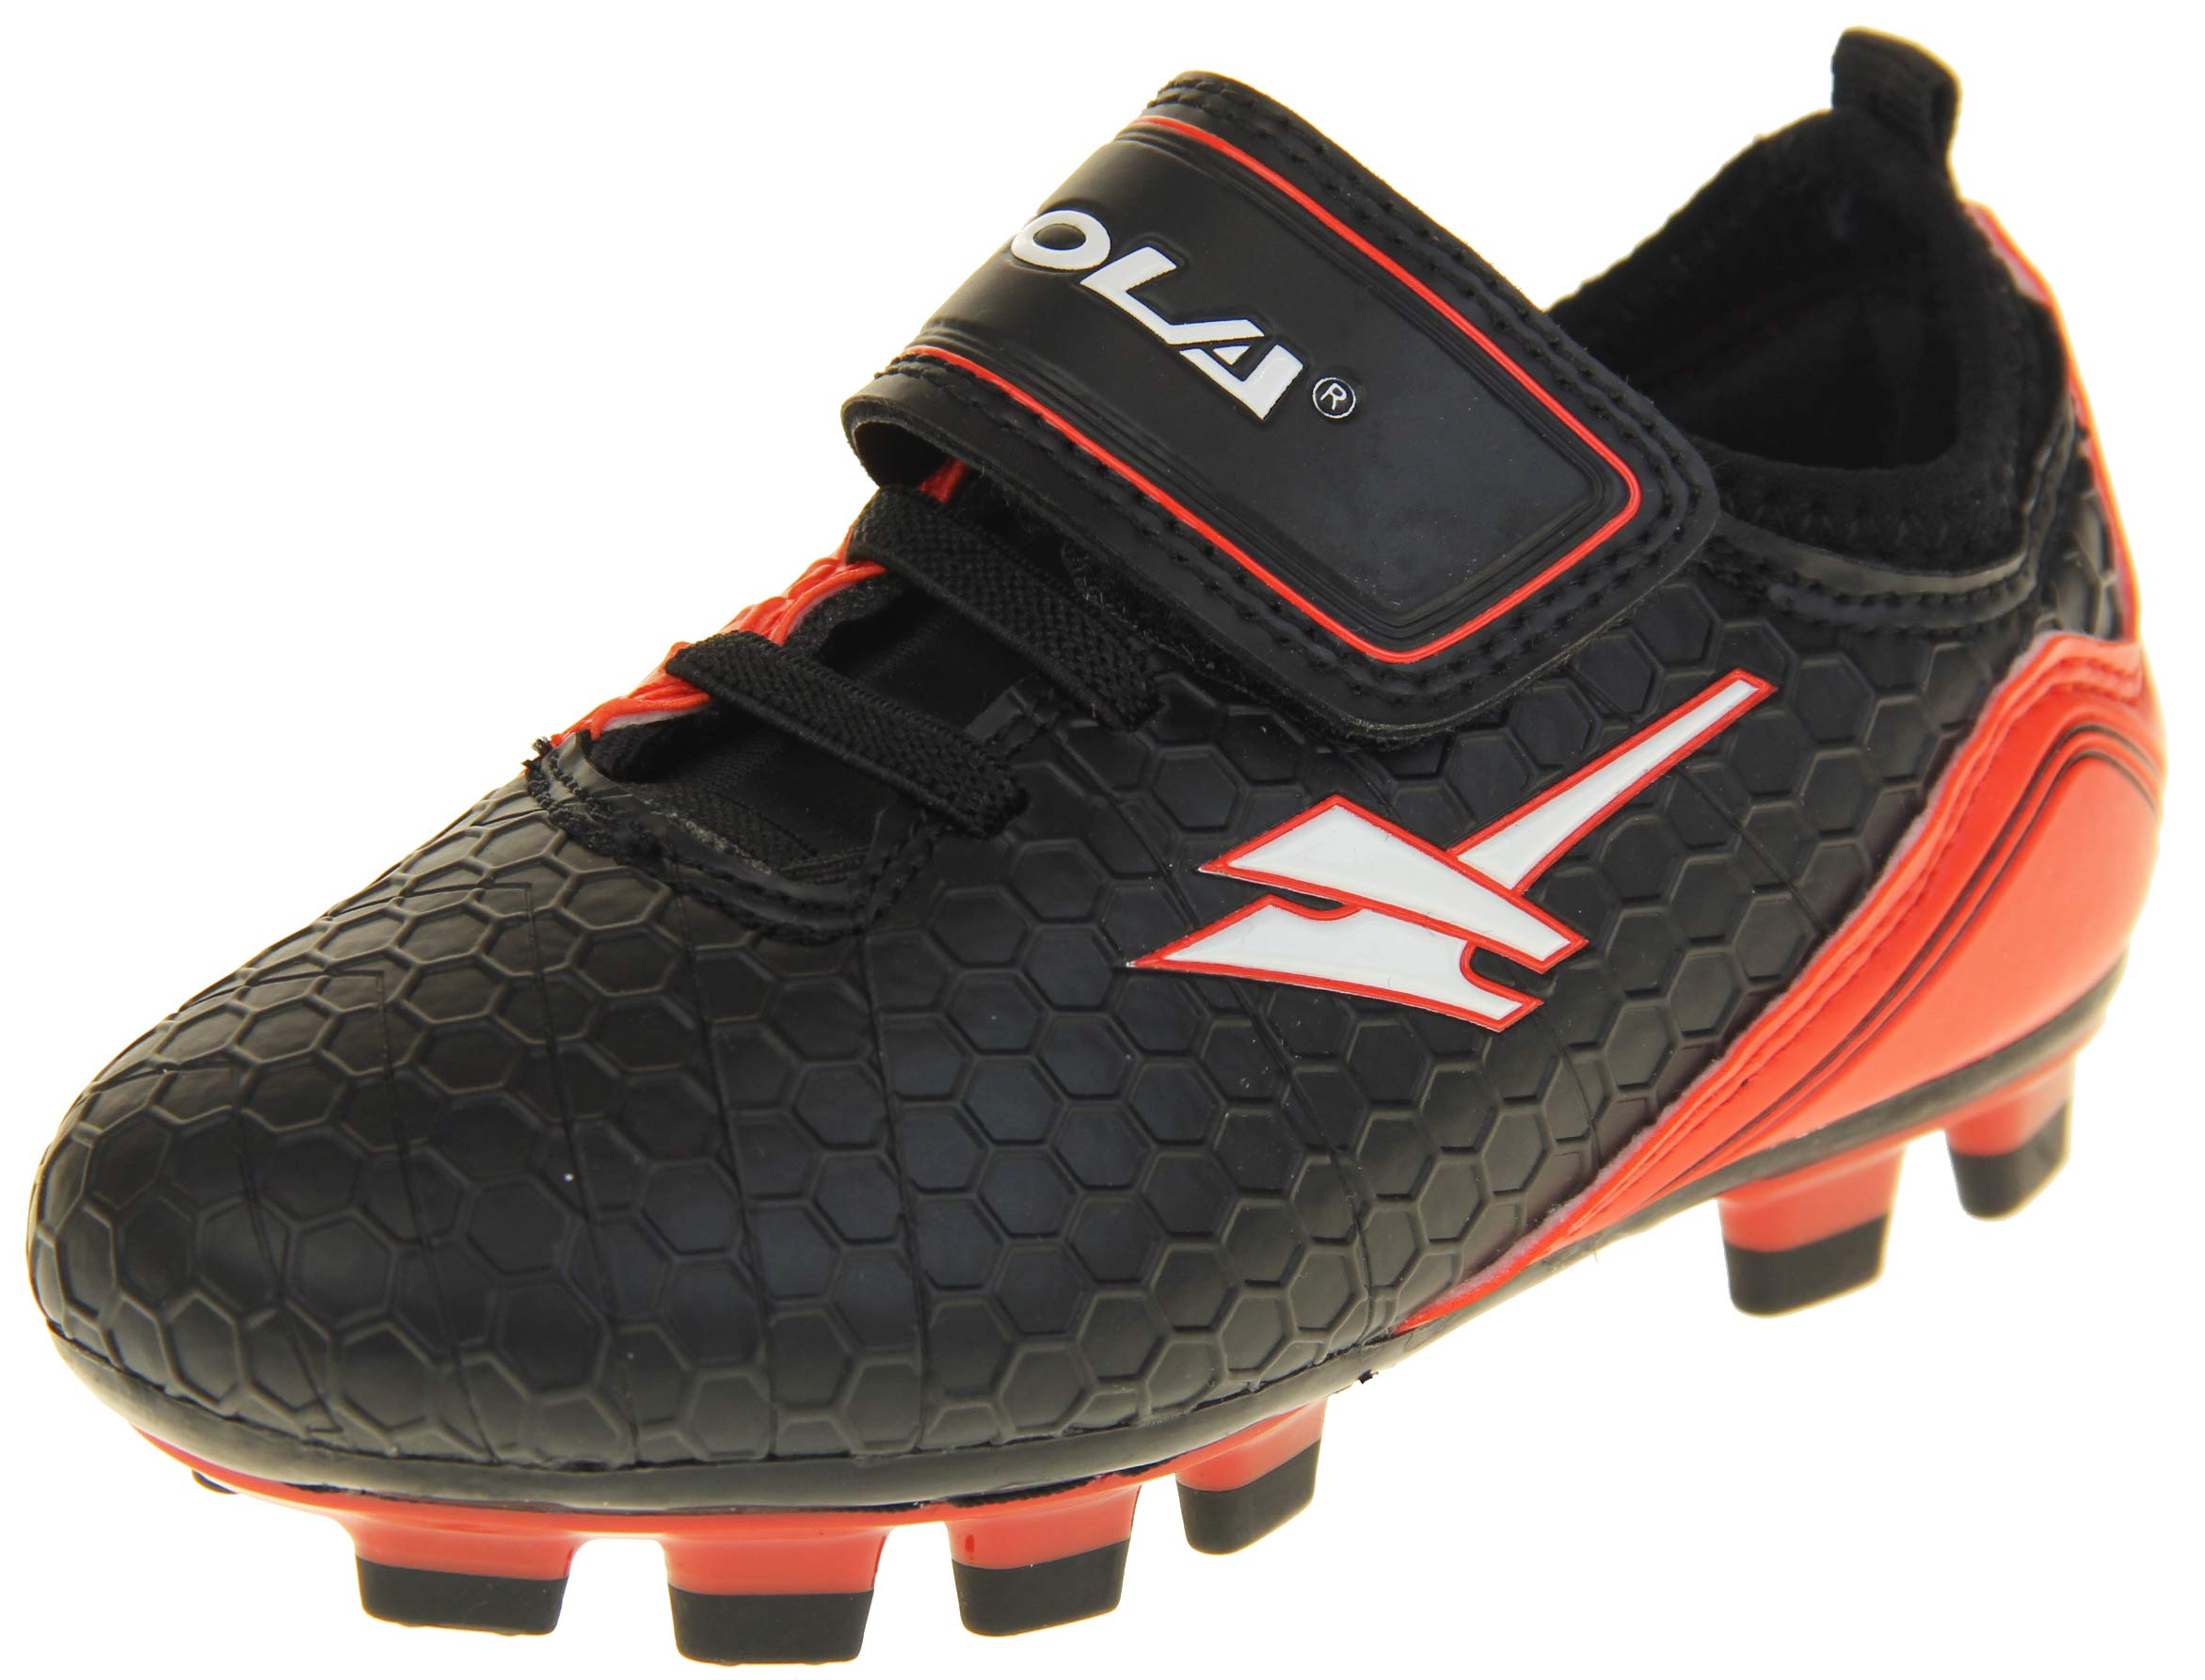 Gola Boys Blade Astro Turf Football Boots Sneakers Black & Red US 9